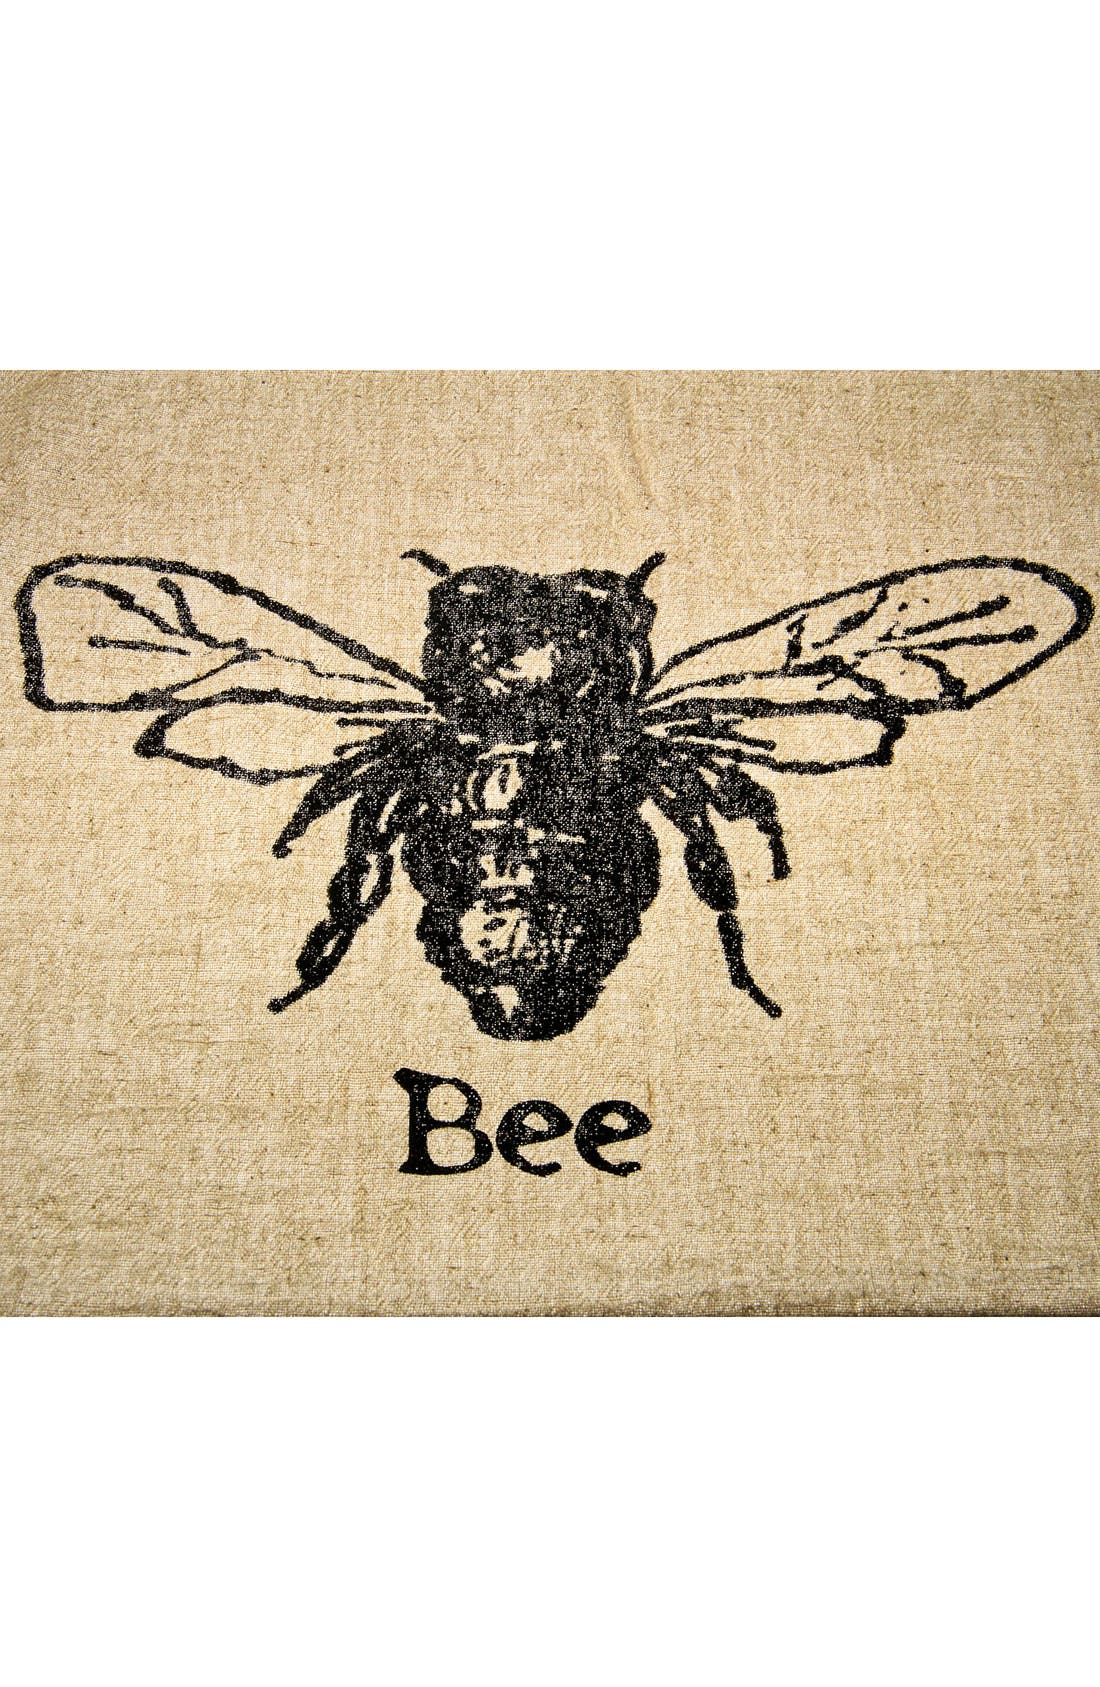 Alternate Image 1 Selected - Blithe and Bonny 'Bee' Dish Towels